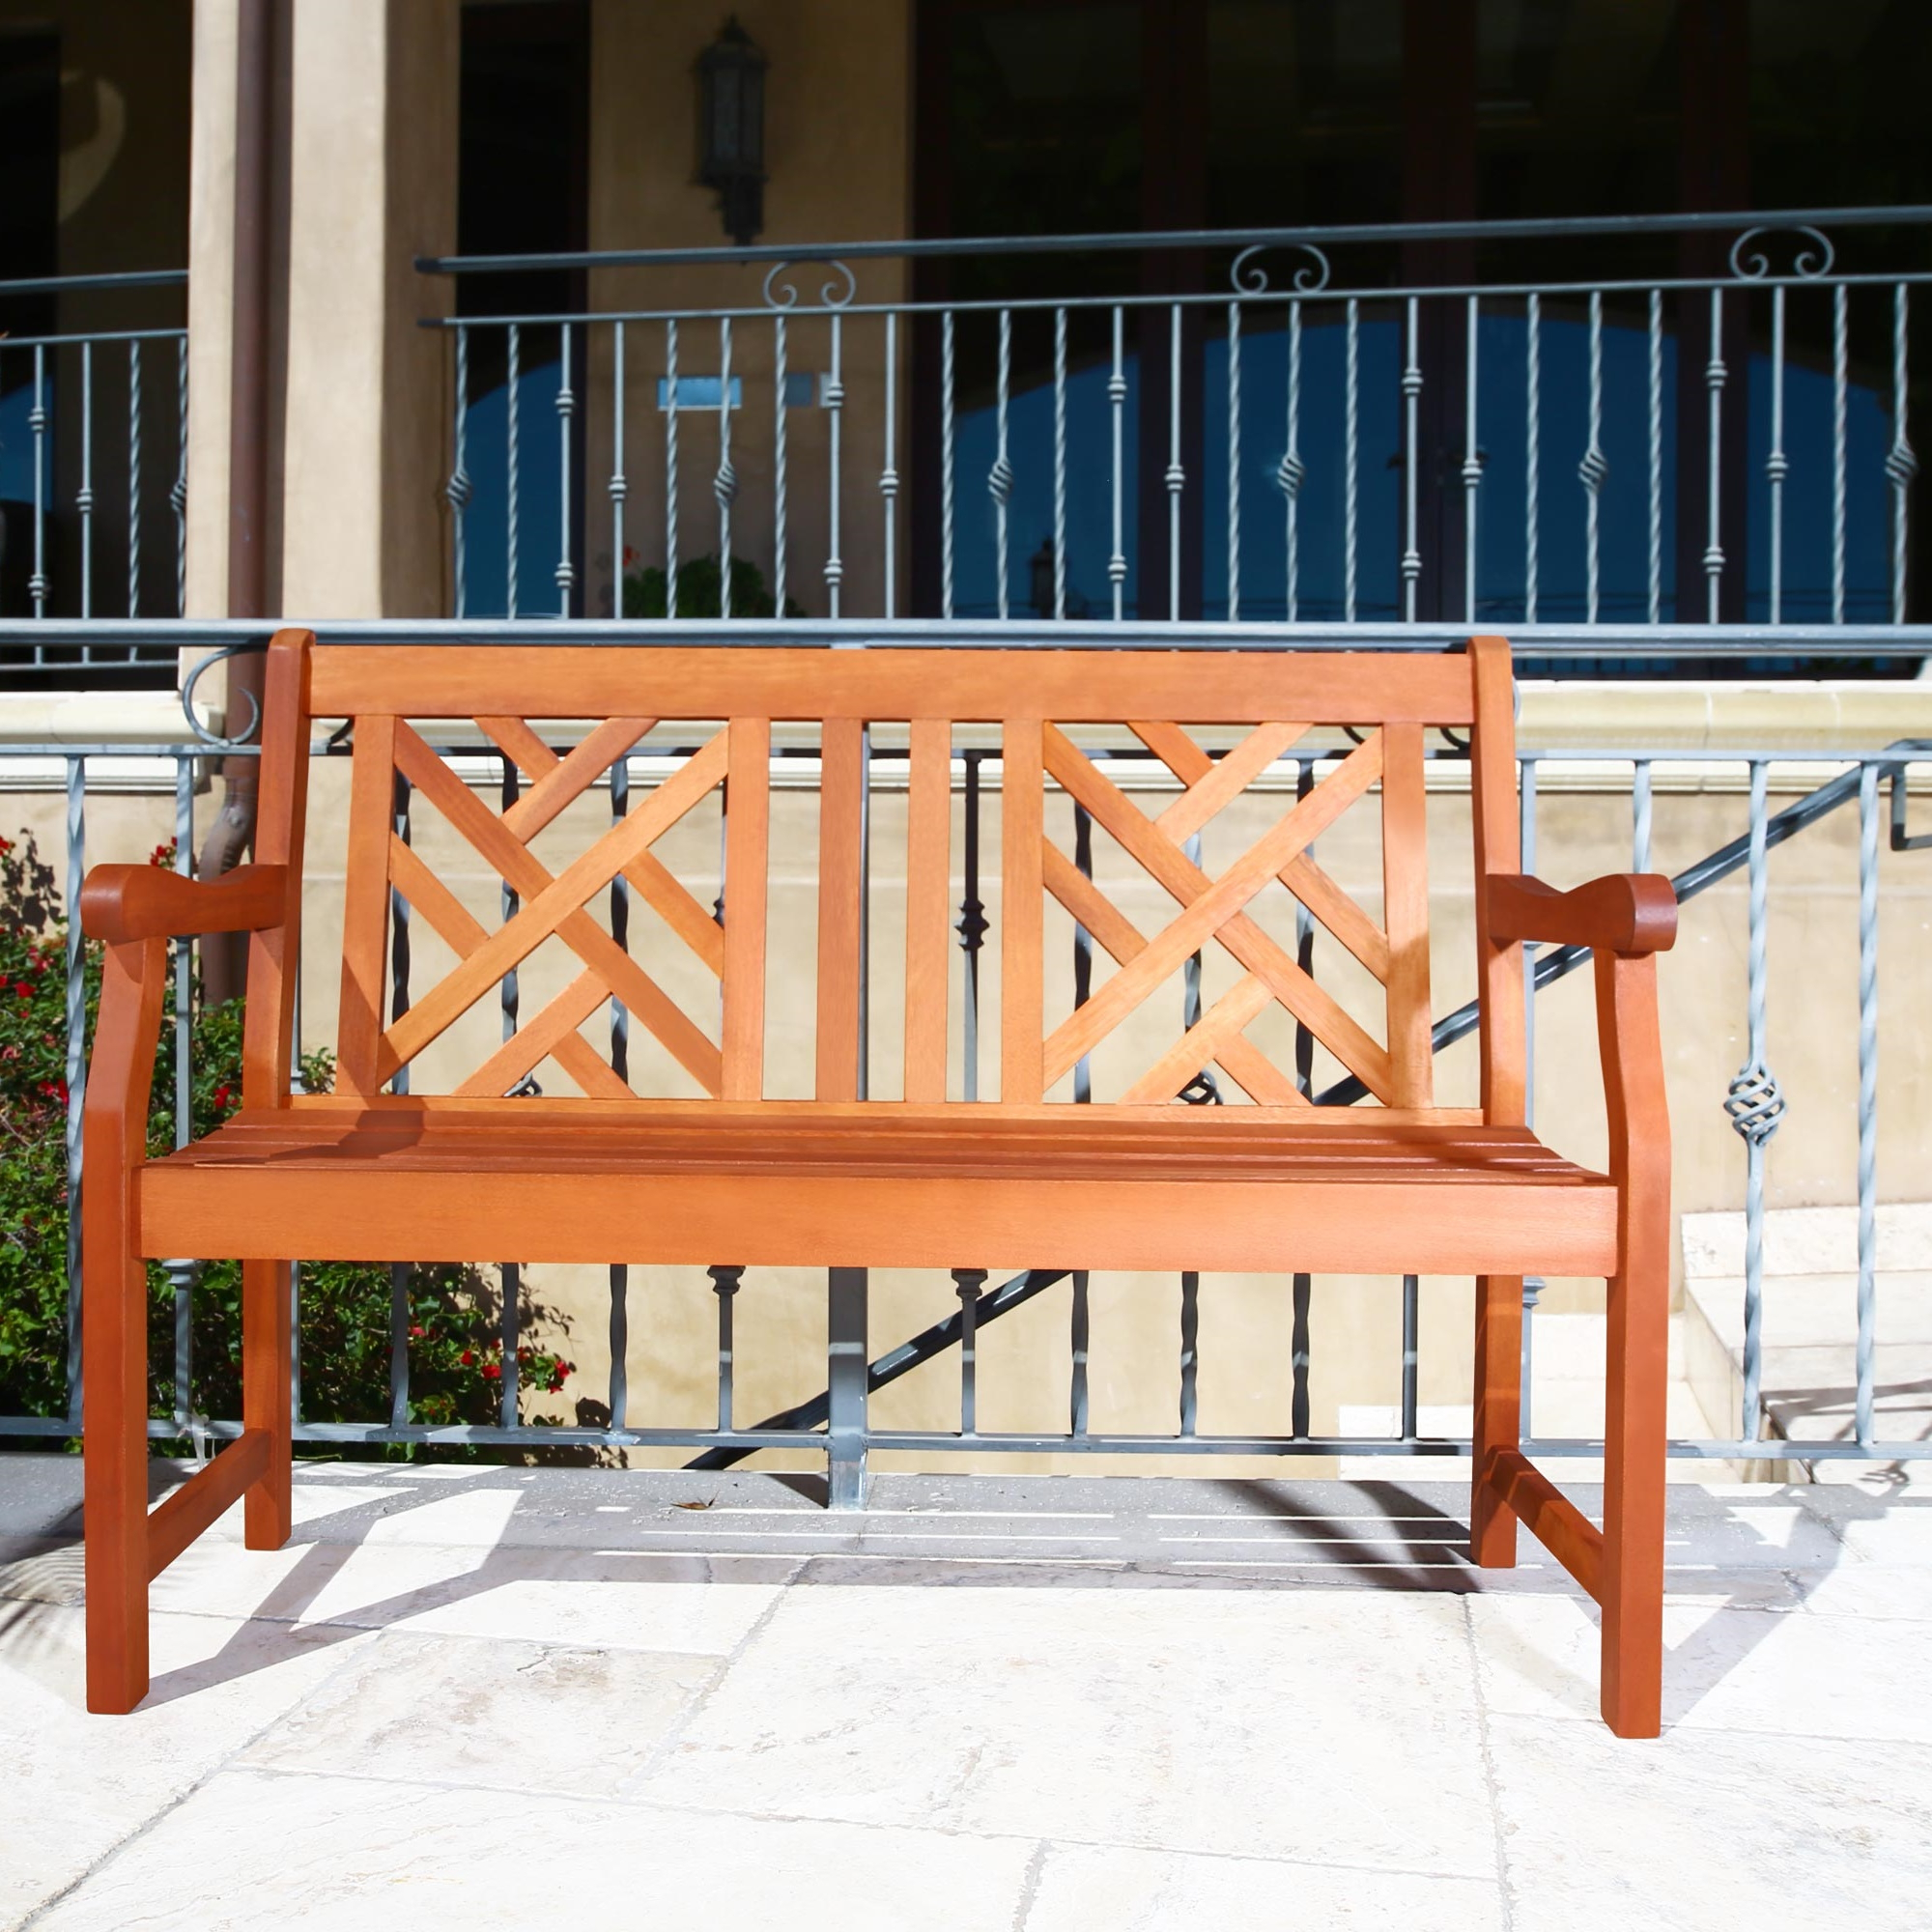 Maliyah Wooden Garden Benches With Regard To Widely Used Malibu Outdoor Patio 4 Foot Wood Garden Bench (View 25 of 30)